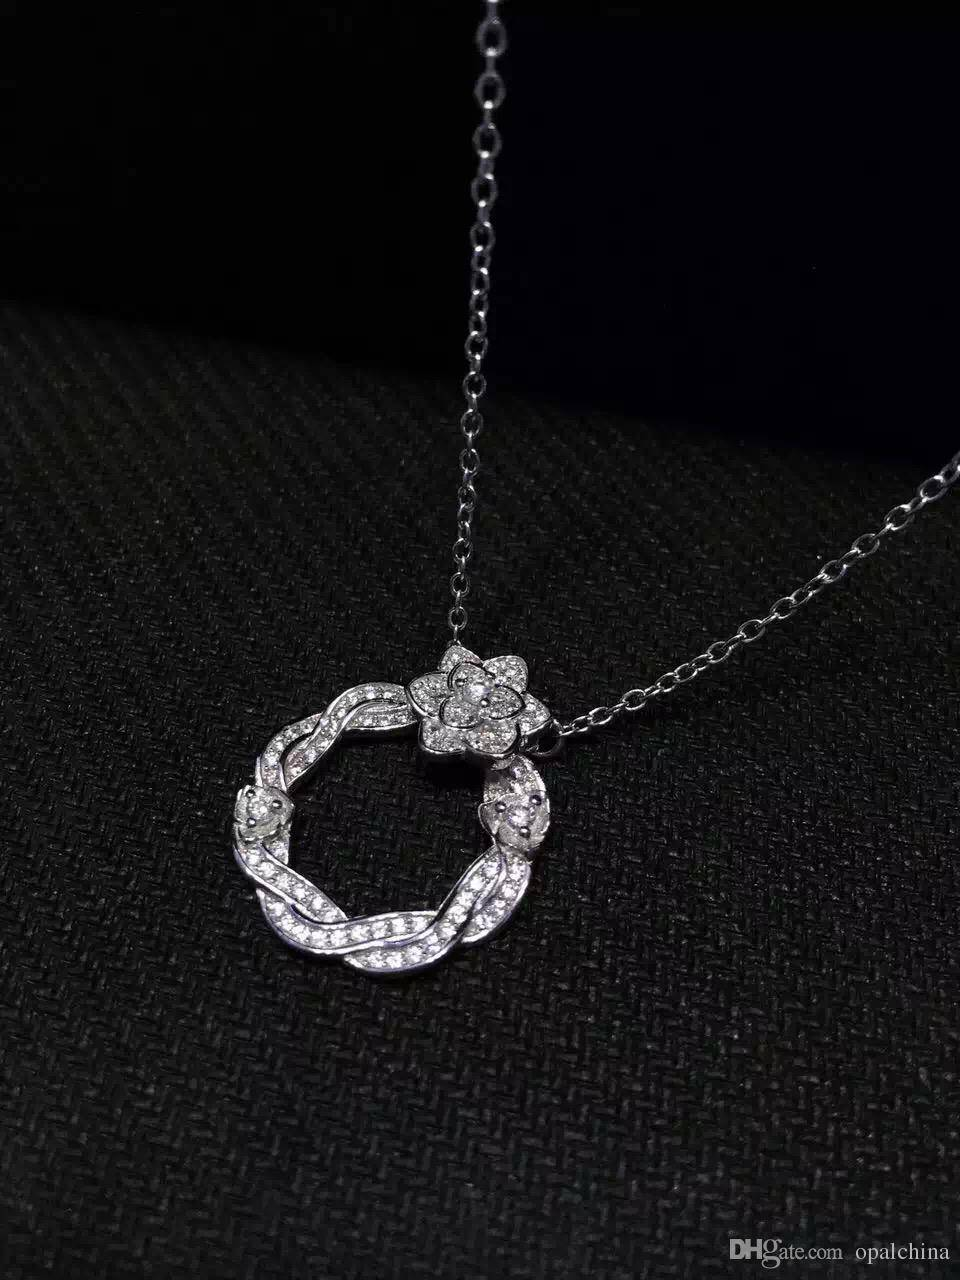 NEFFLY Nice Rose flower 925 Sterling Sliver necklace Women Girls For Party&Gift Fashion Jewelry 1PC